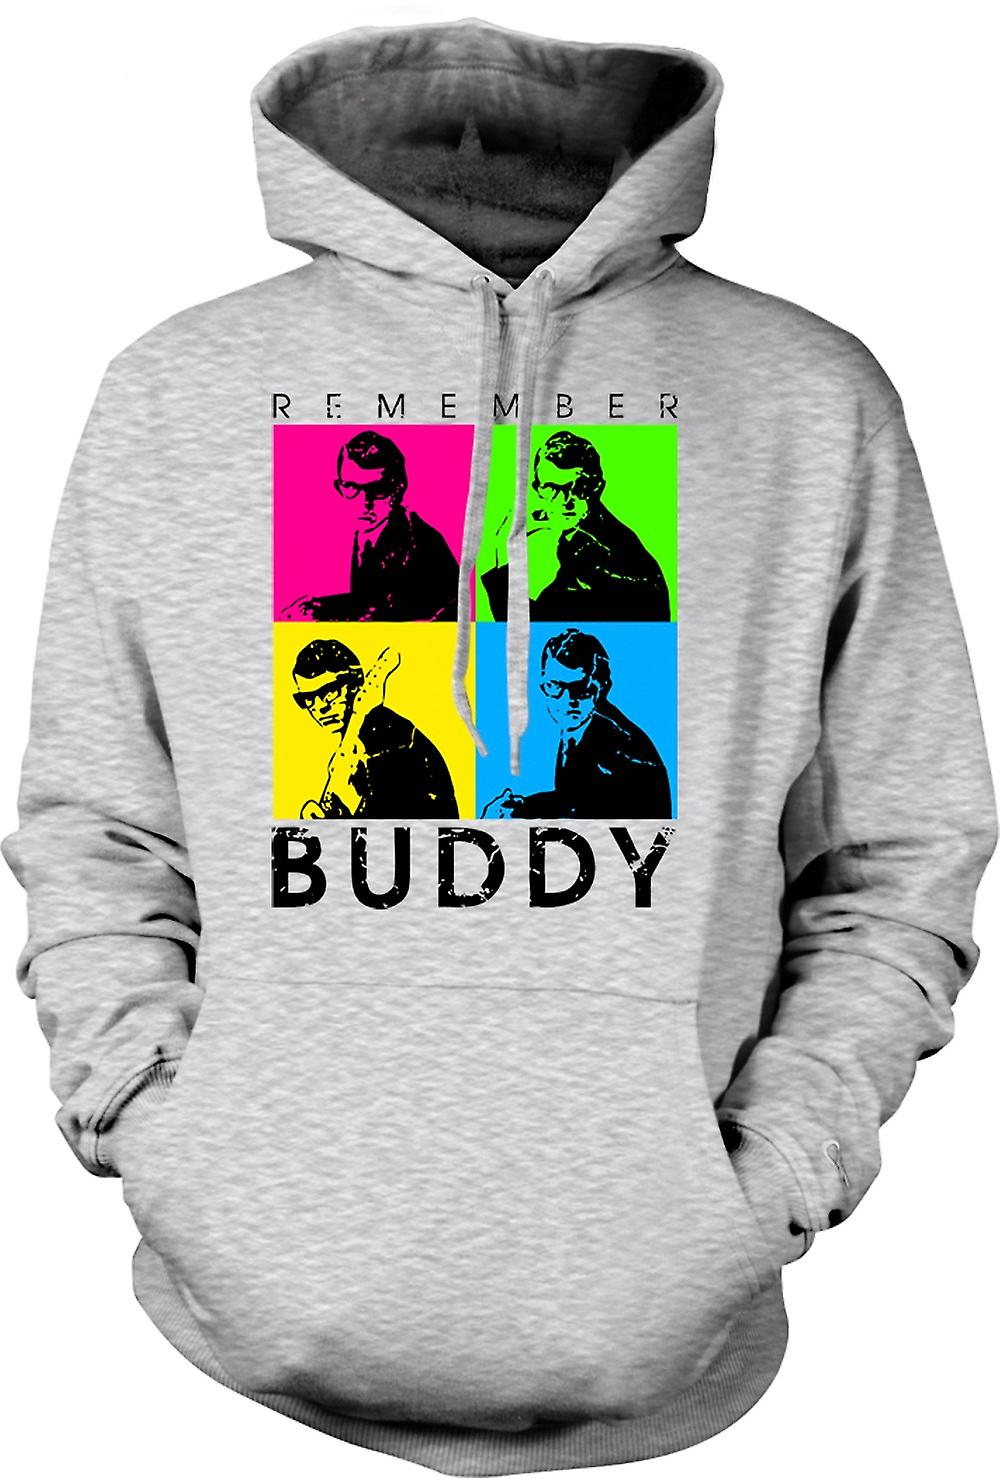 Mens Hoodie - Buddy Holly kom ihåg